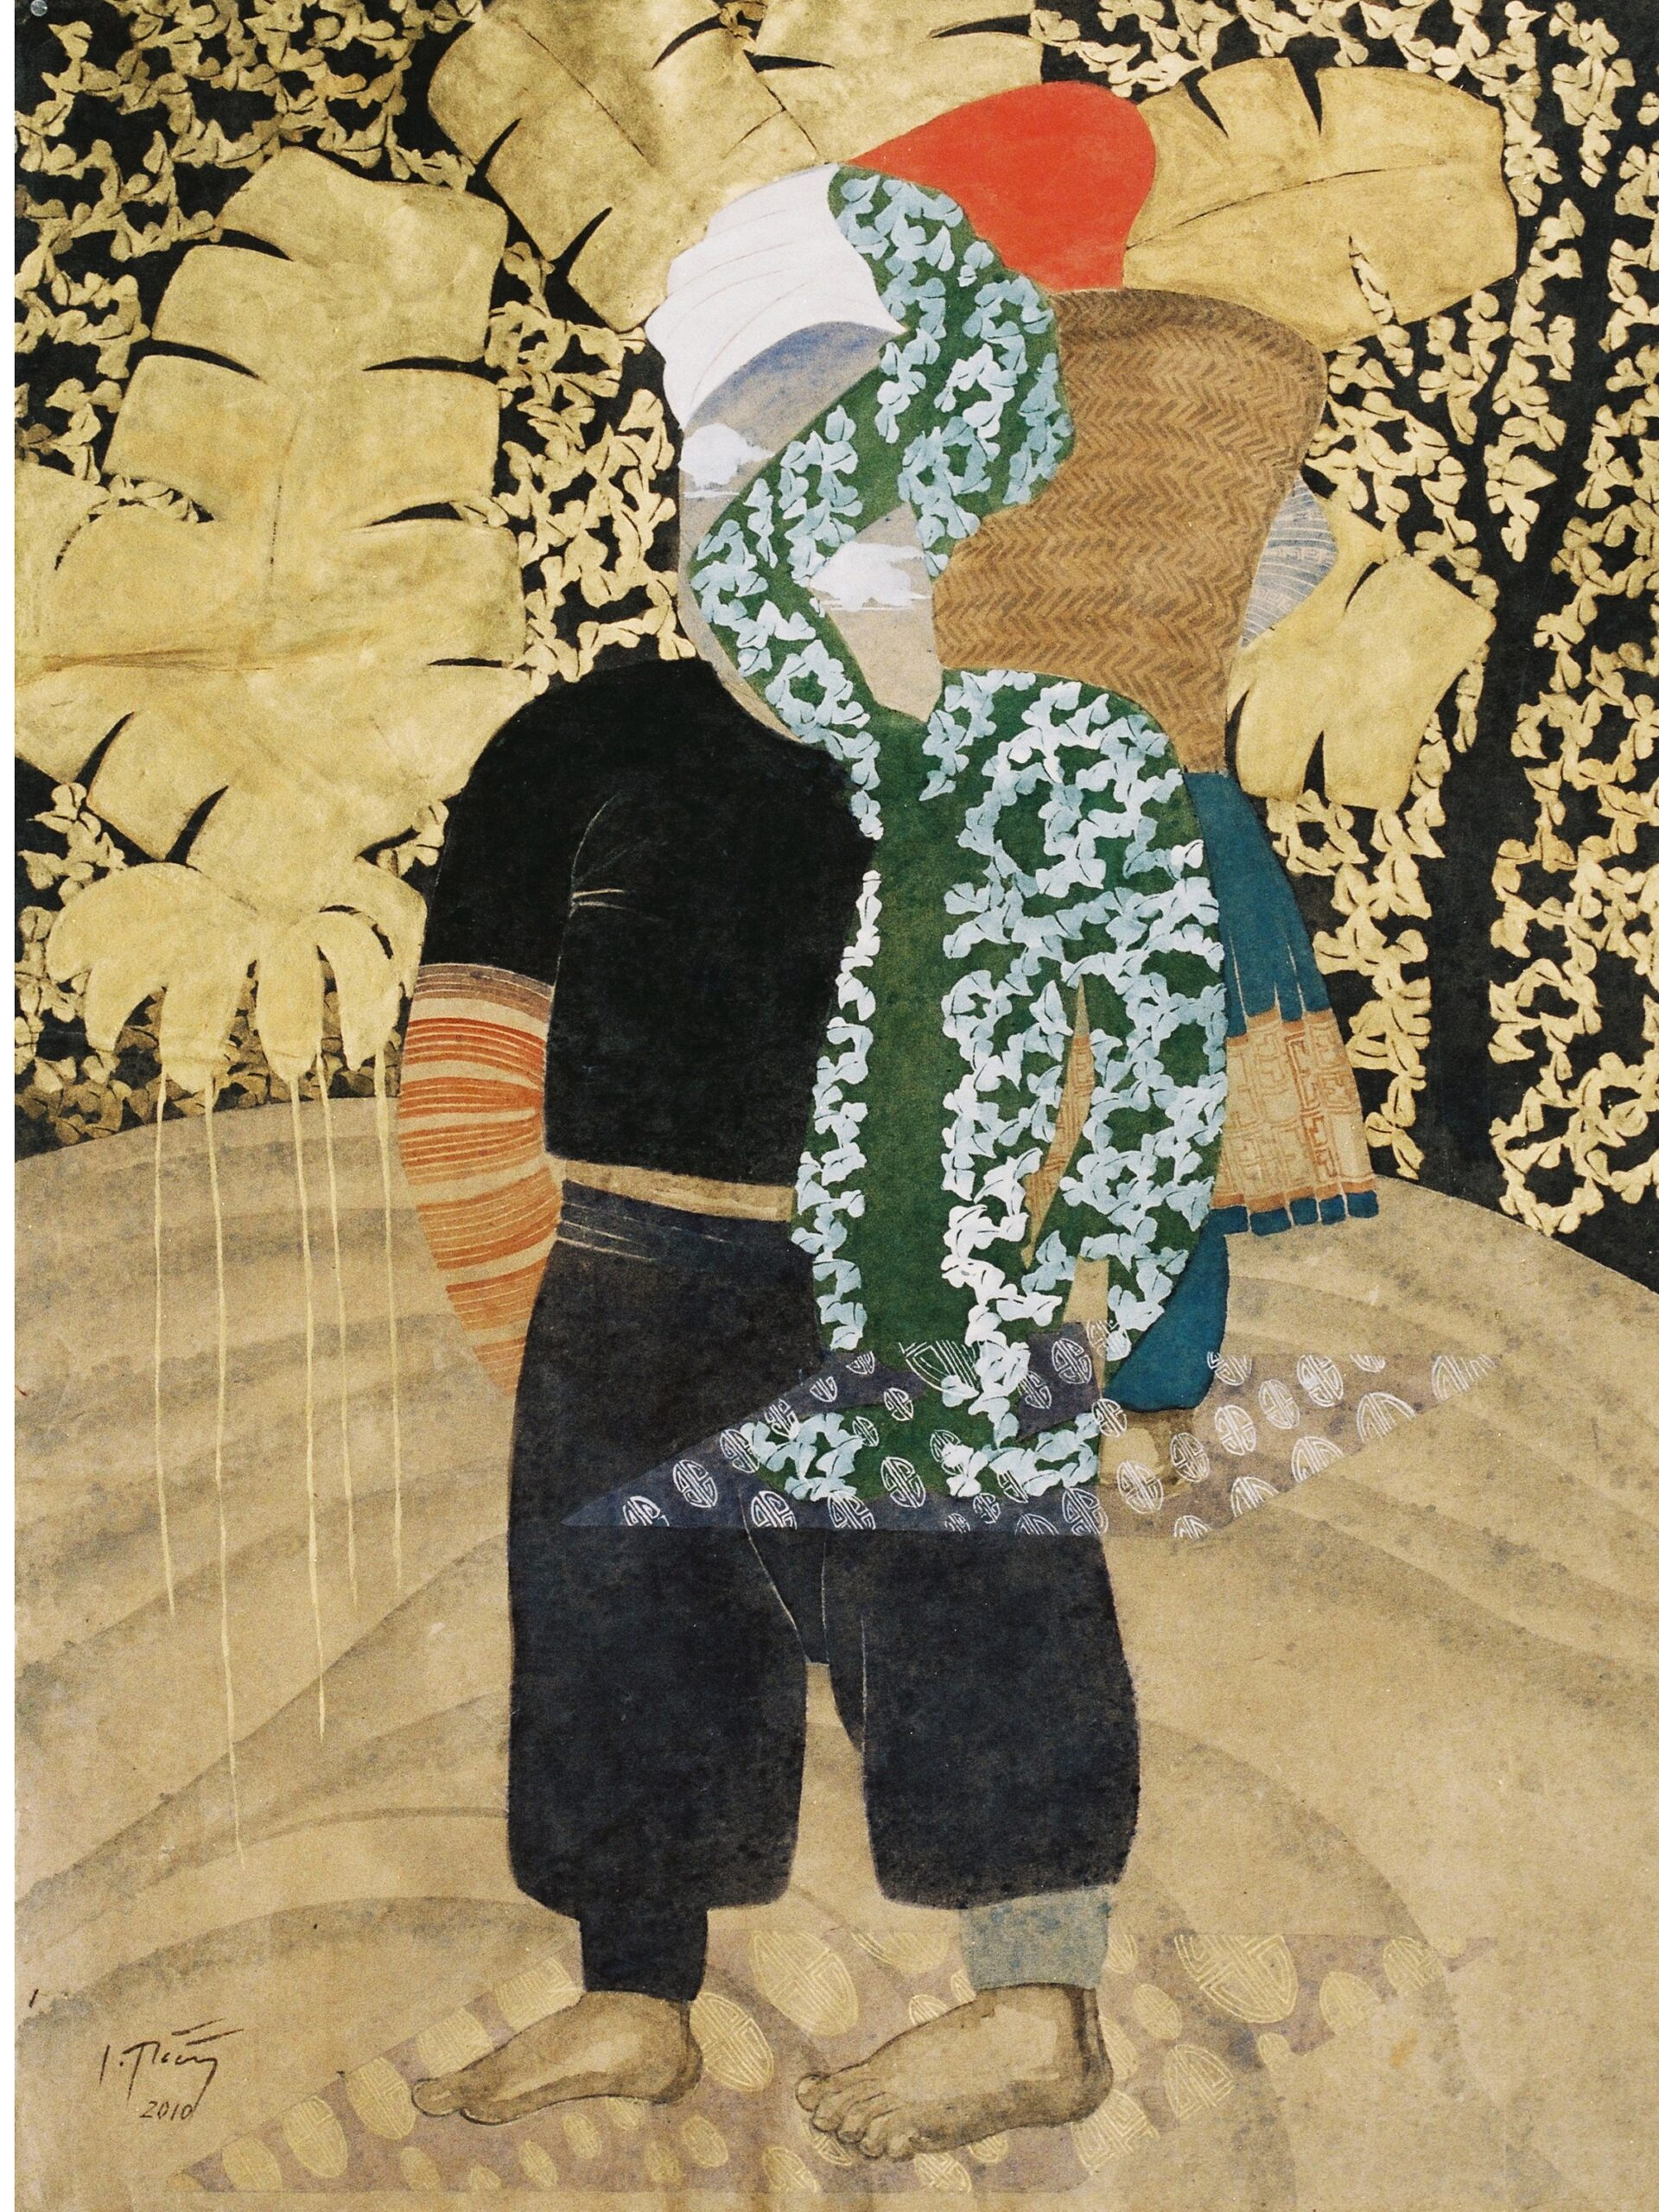 Banana Leaf Boy by Dinh Thi Tham Poong, watercolour on handmade paper, 2010, 80 x 60 cm